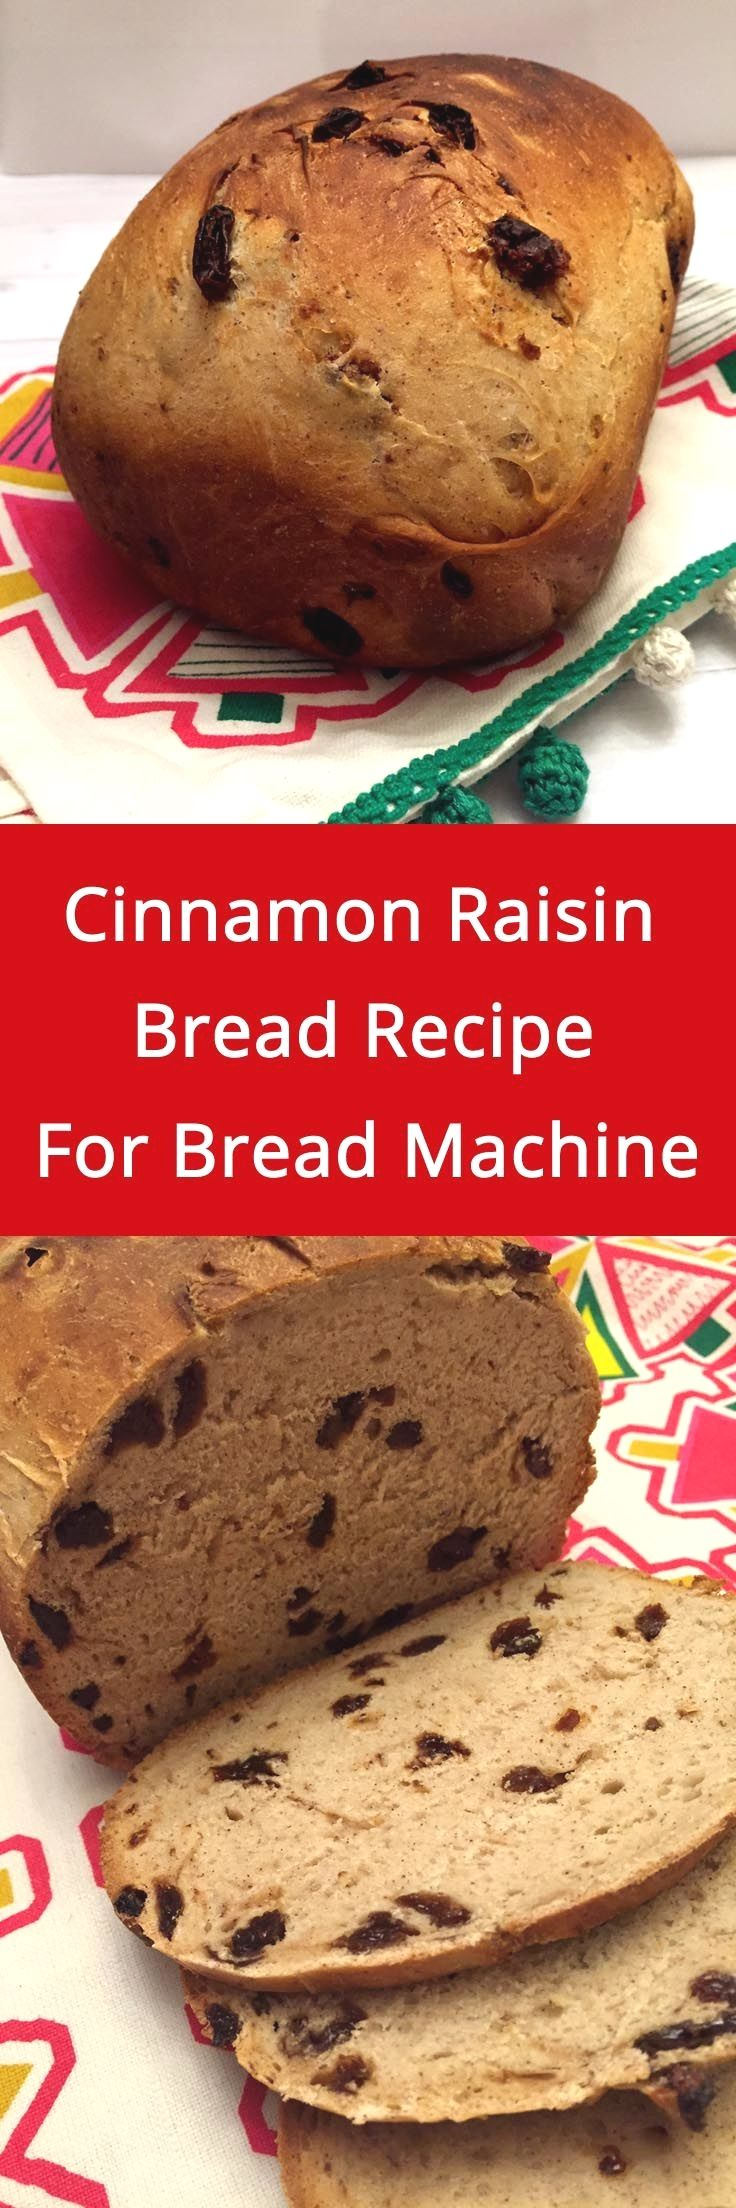 Pin by juliey2bj4c on Christmas Food | Bread machine ...